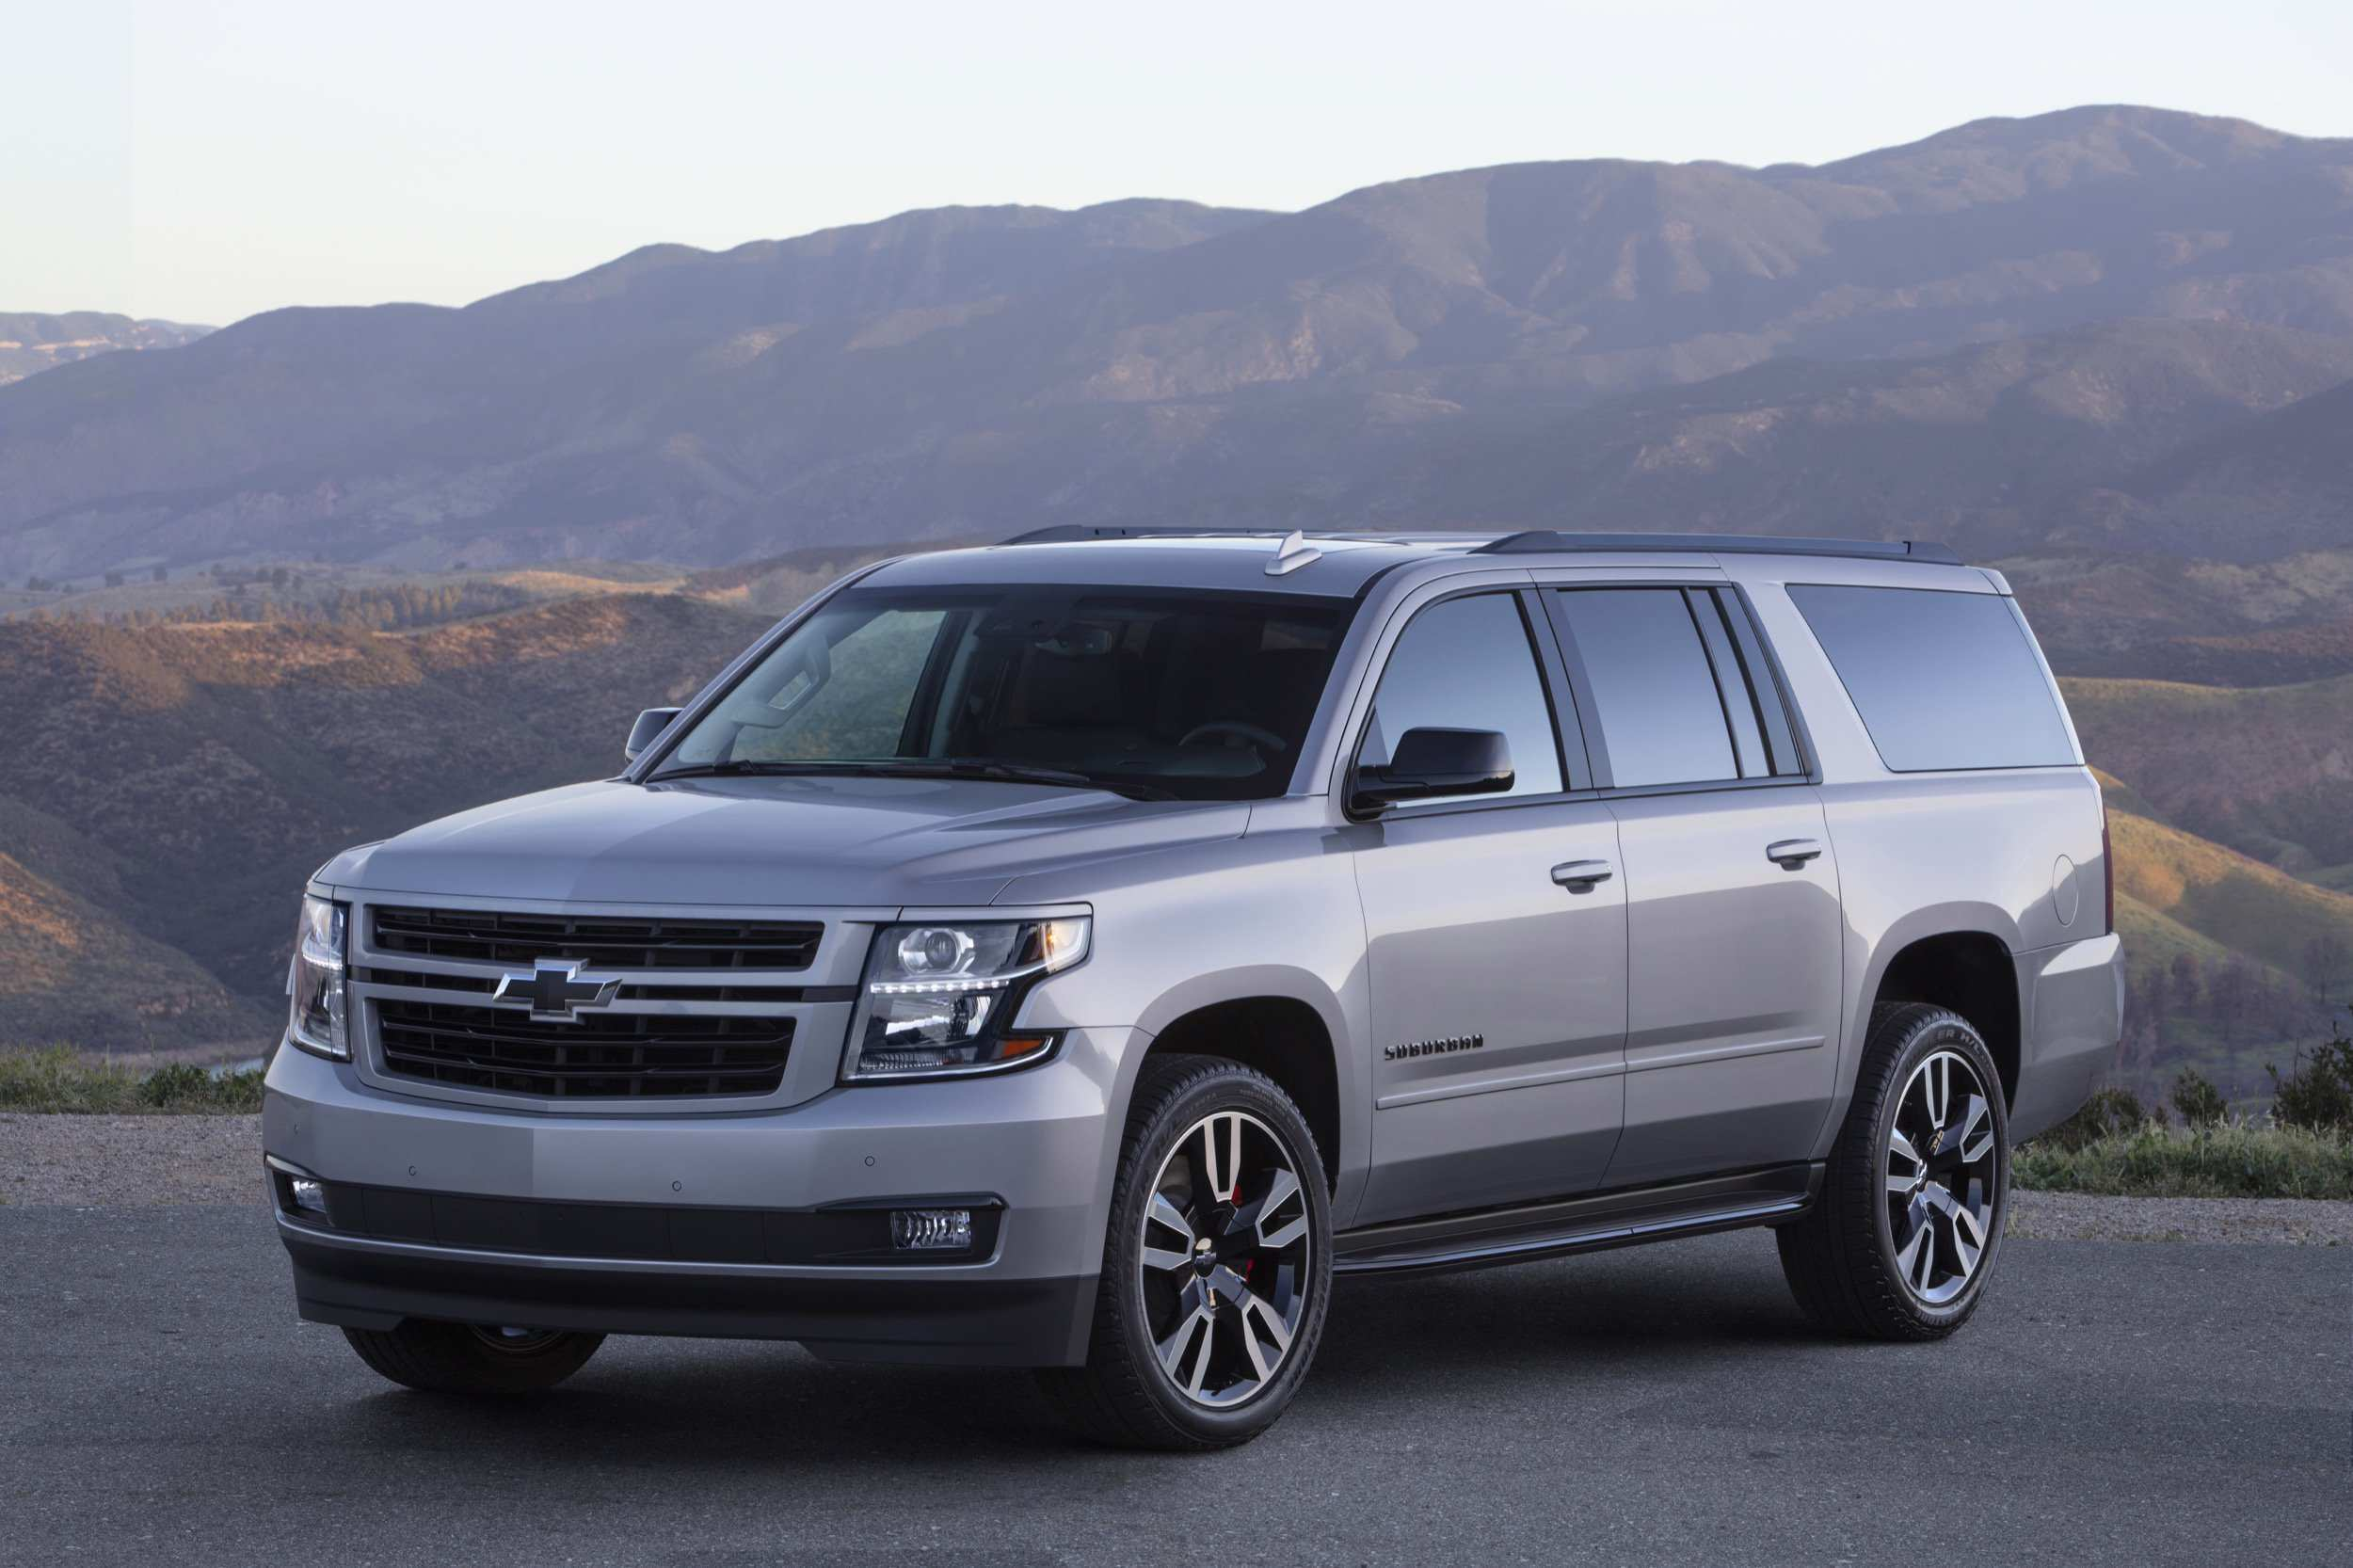 14 New 2020 Chevy Suburban Reviews by 2020 Chevy Suburban